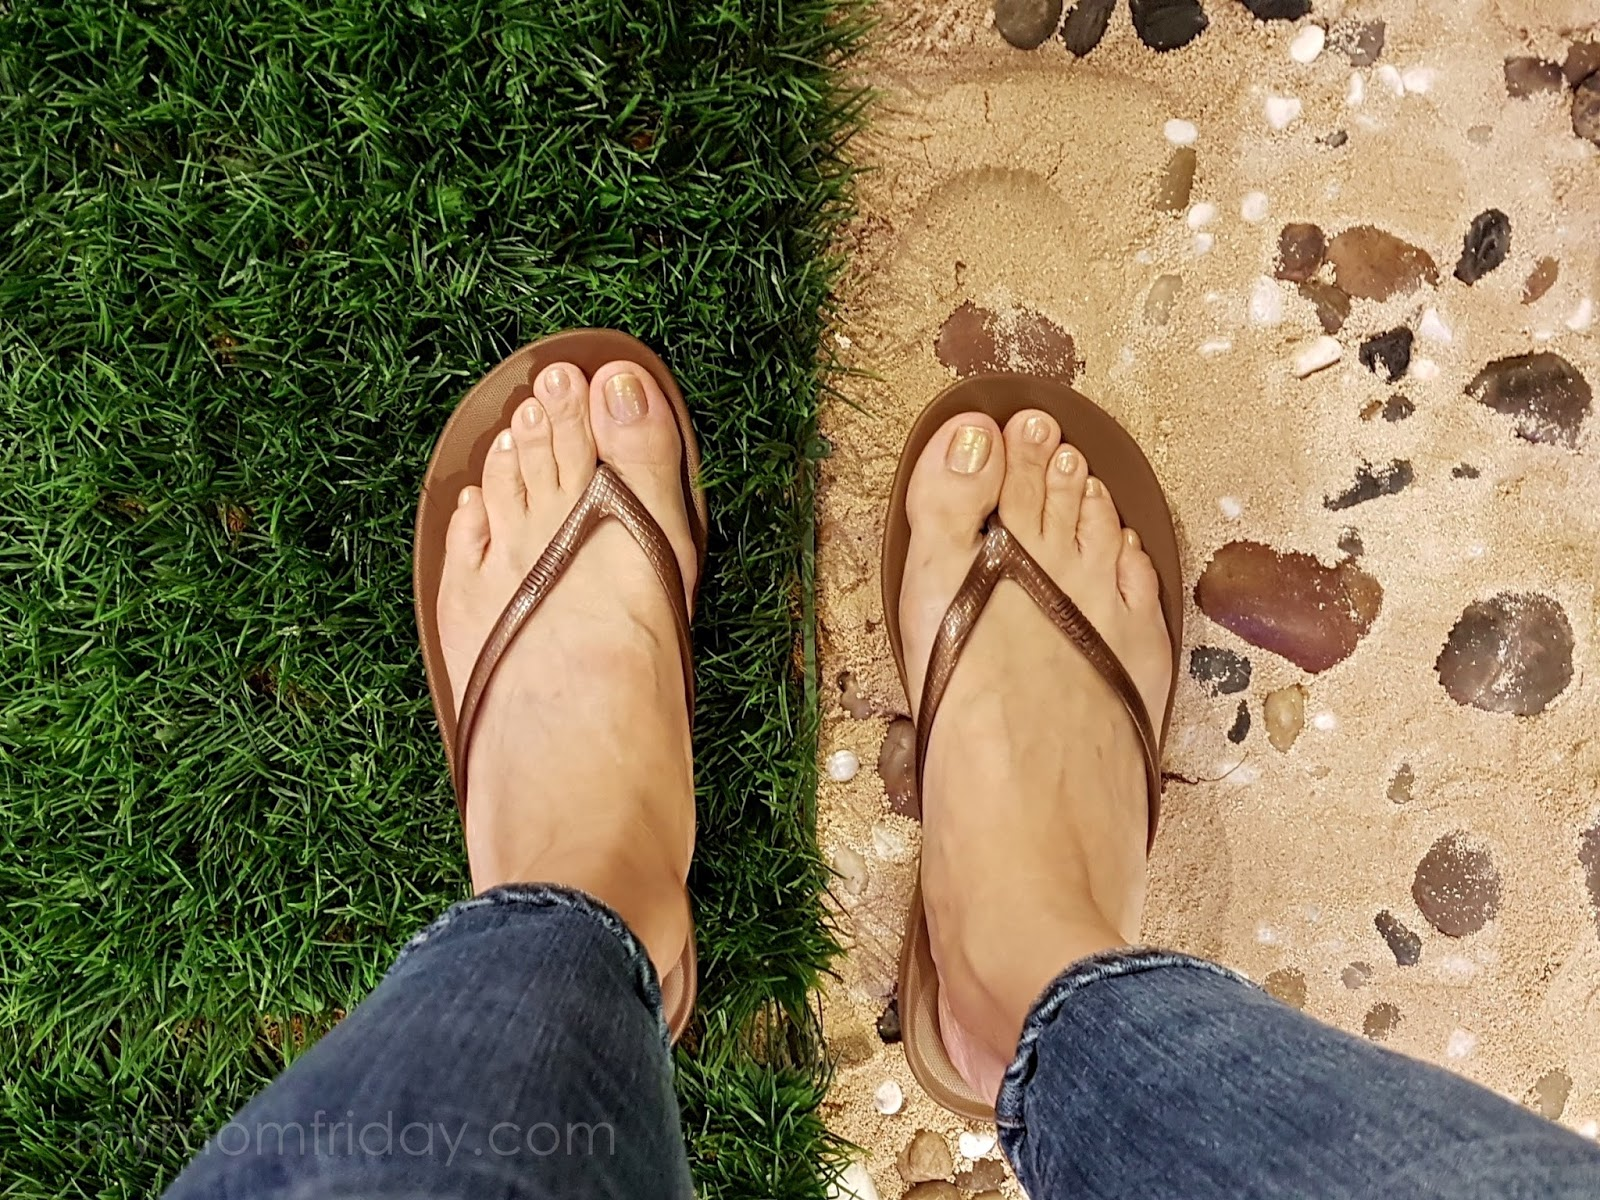 7d90a5a91 My mom friday its iqushion ergonomic flip flops jpg 1600x1200 Fitflop shoes  foot